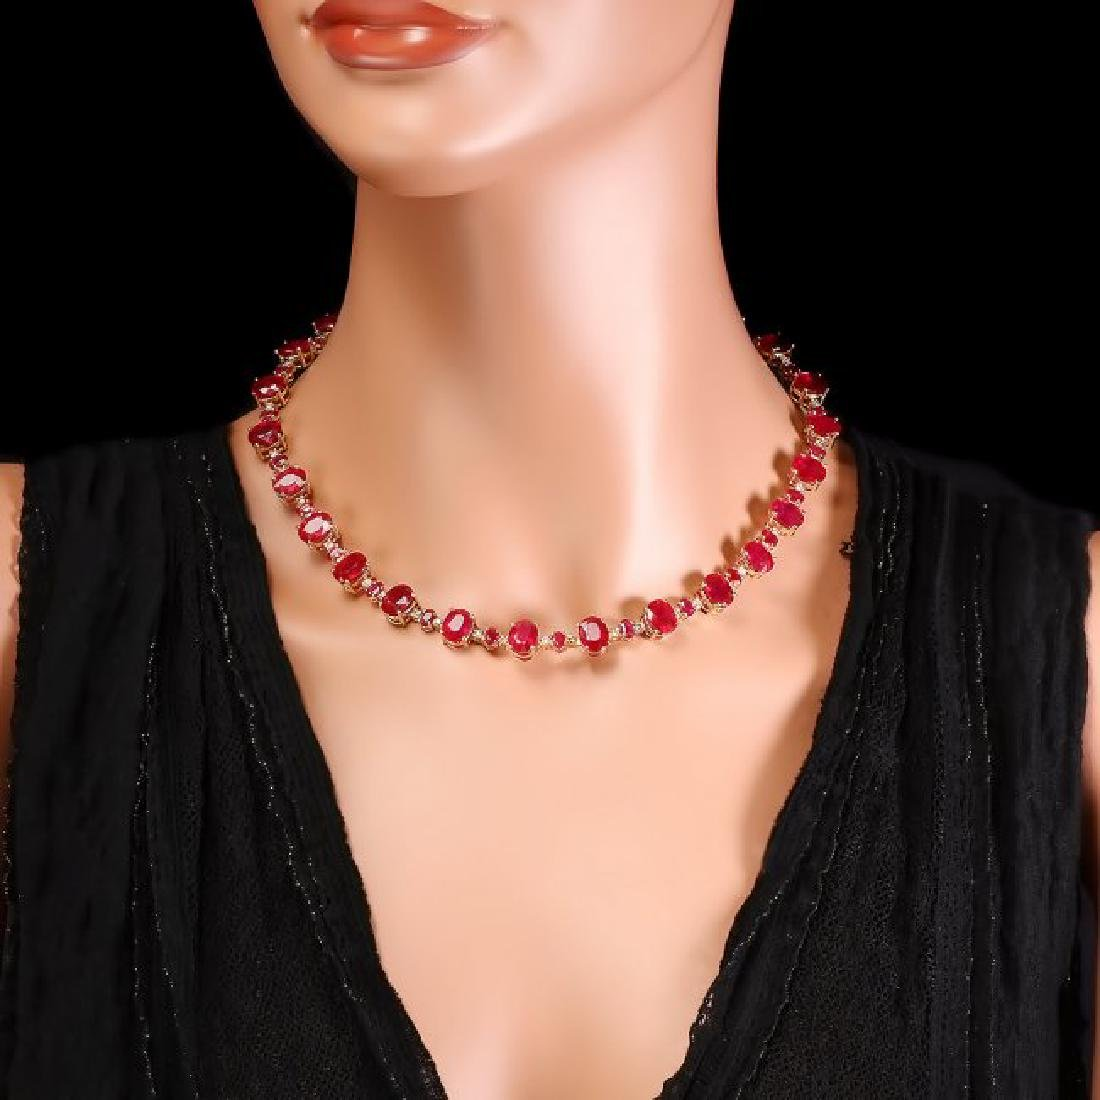 14k Yellow Gold 69ct Ruby 1.75ct Diamond Necklace - 6